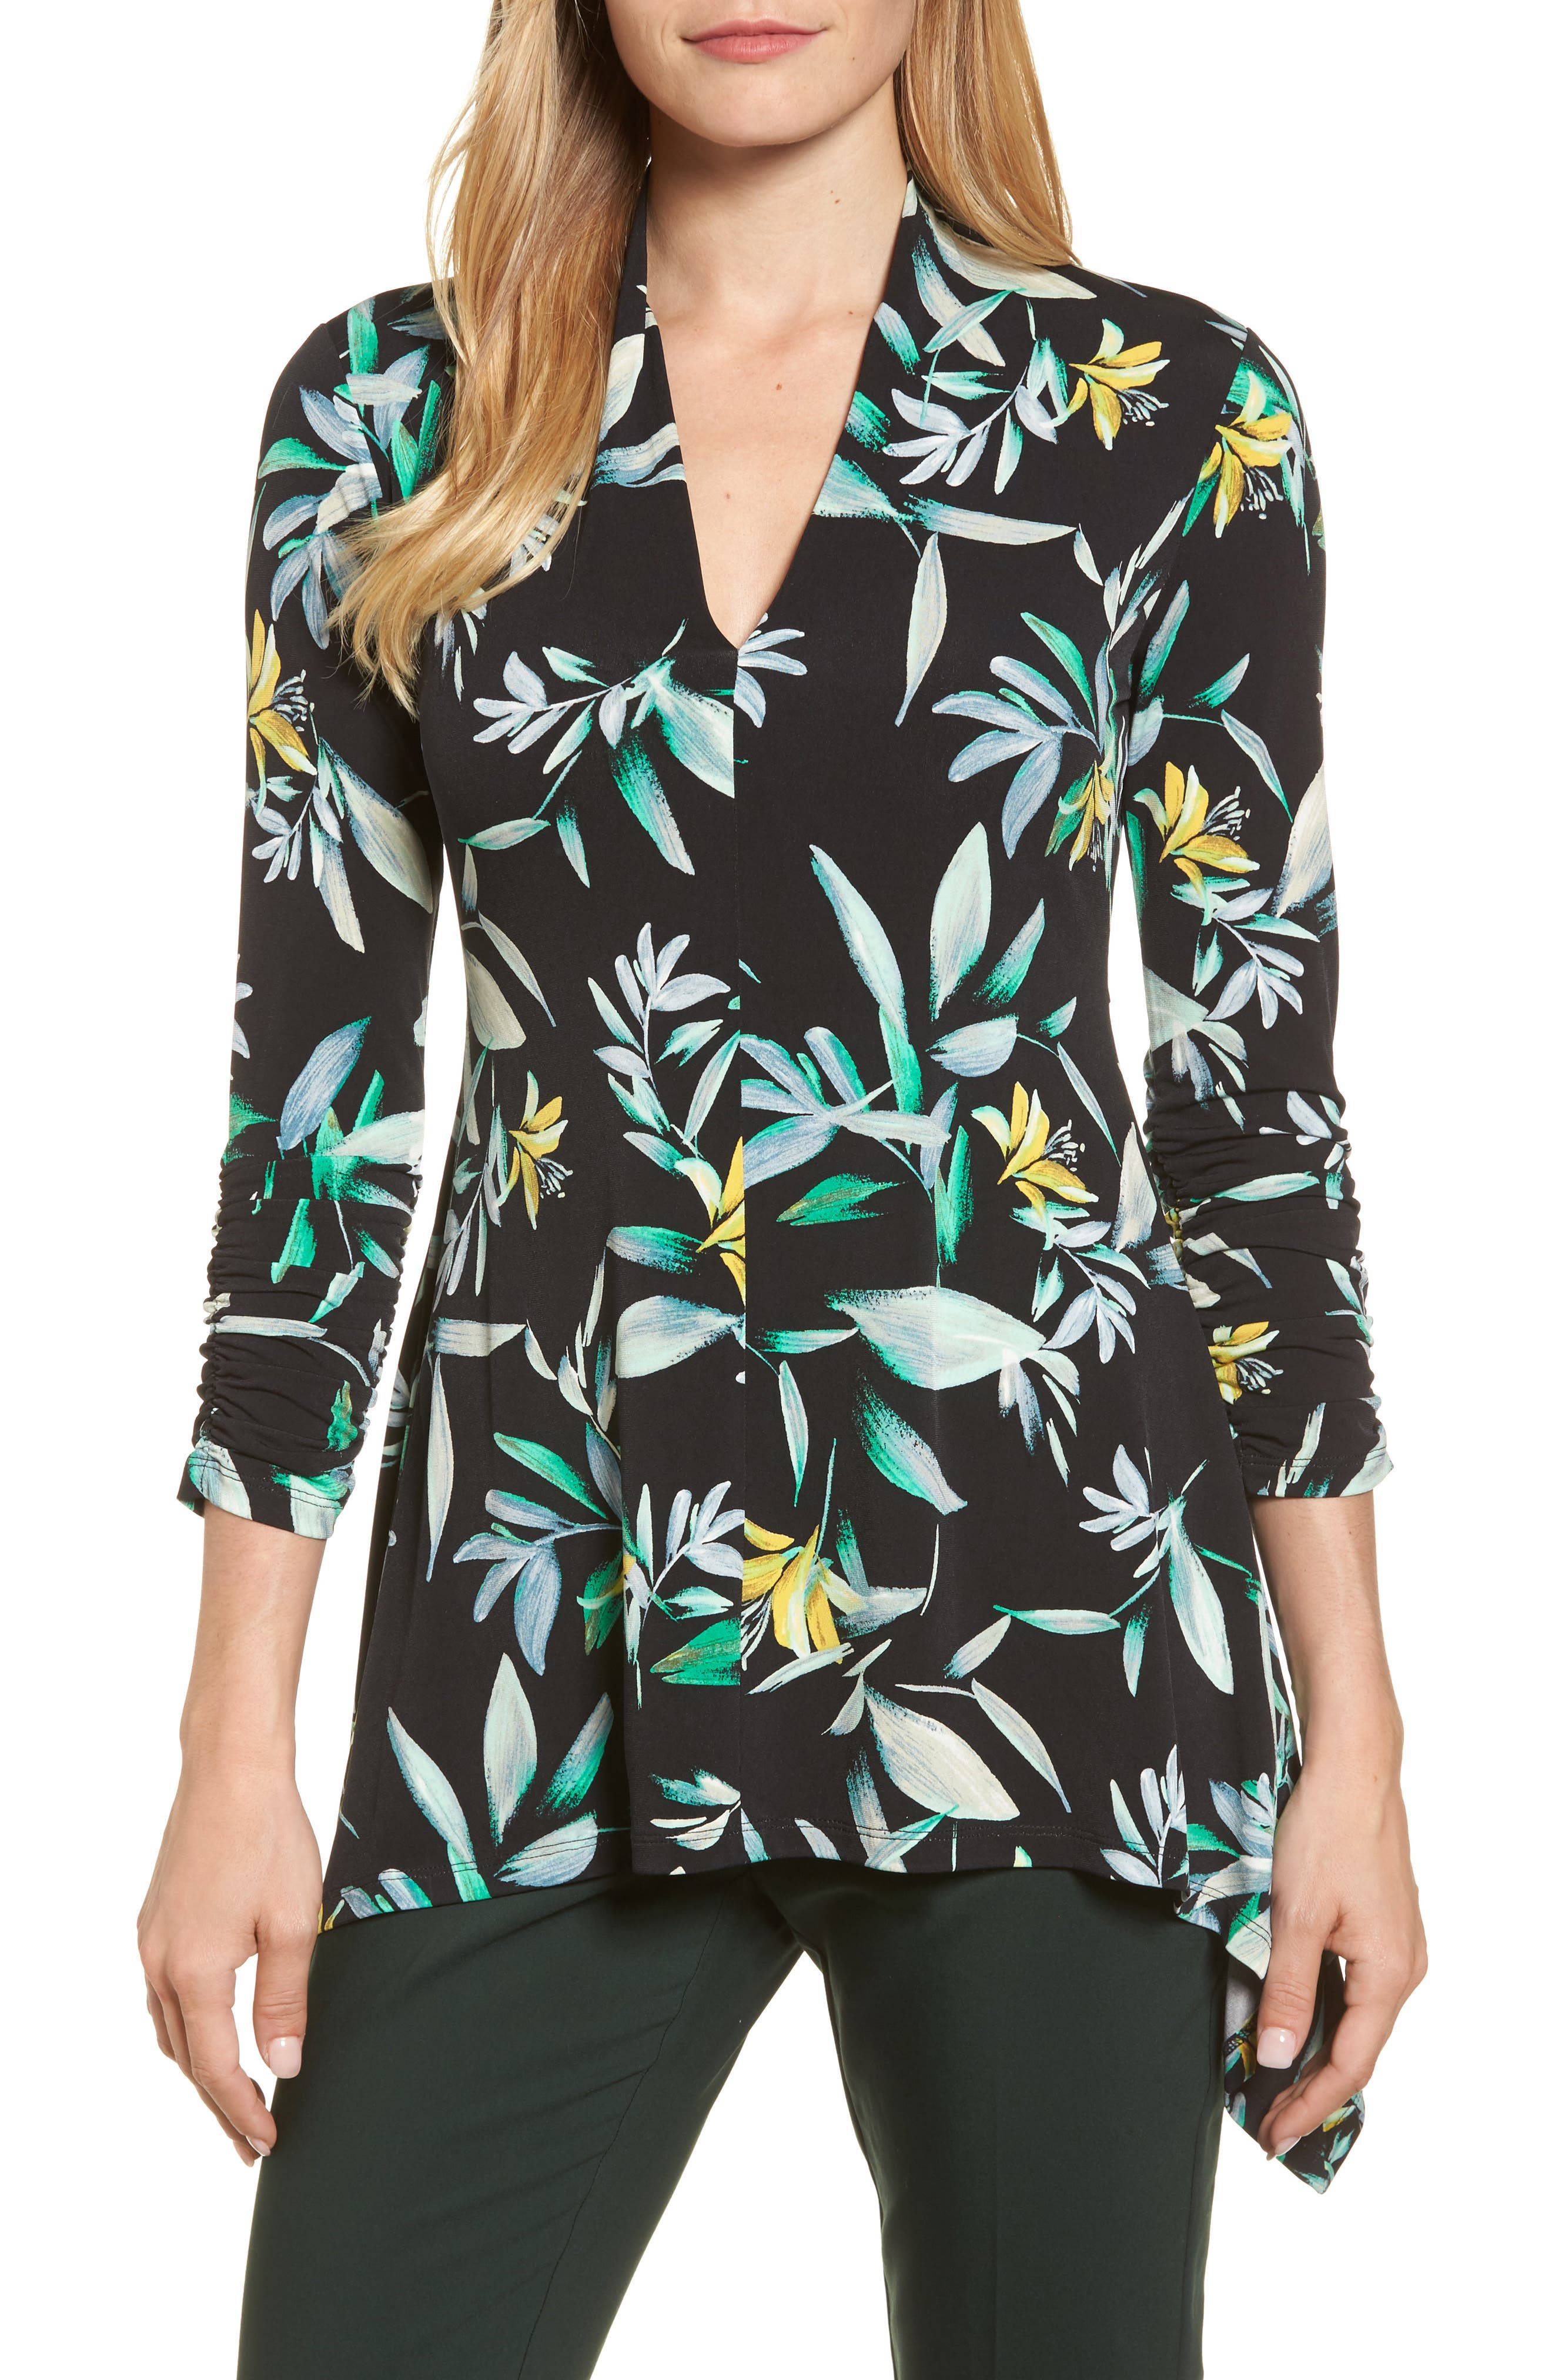 Ruched Sleeve Floral Print Top,                             Main thumbnail 1, color,                             010